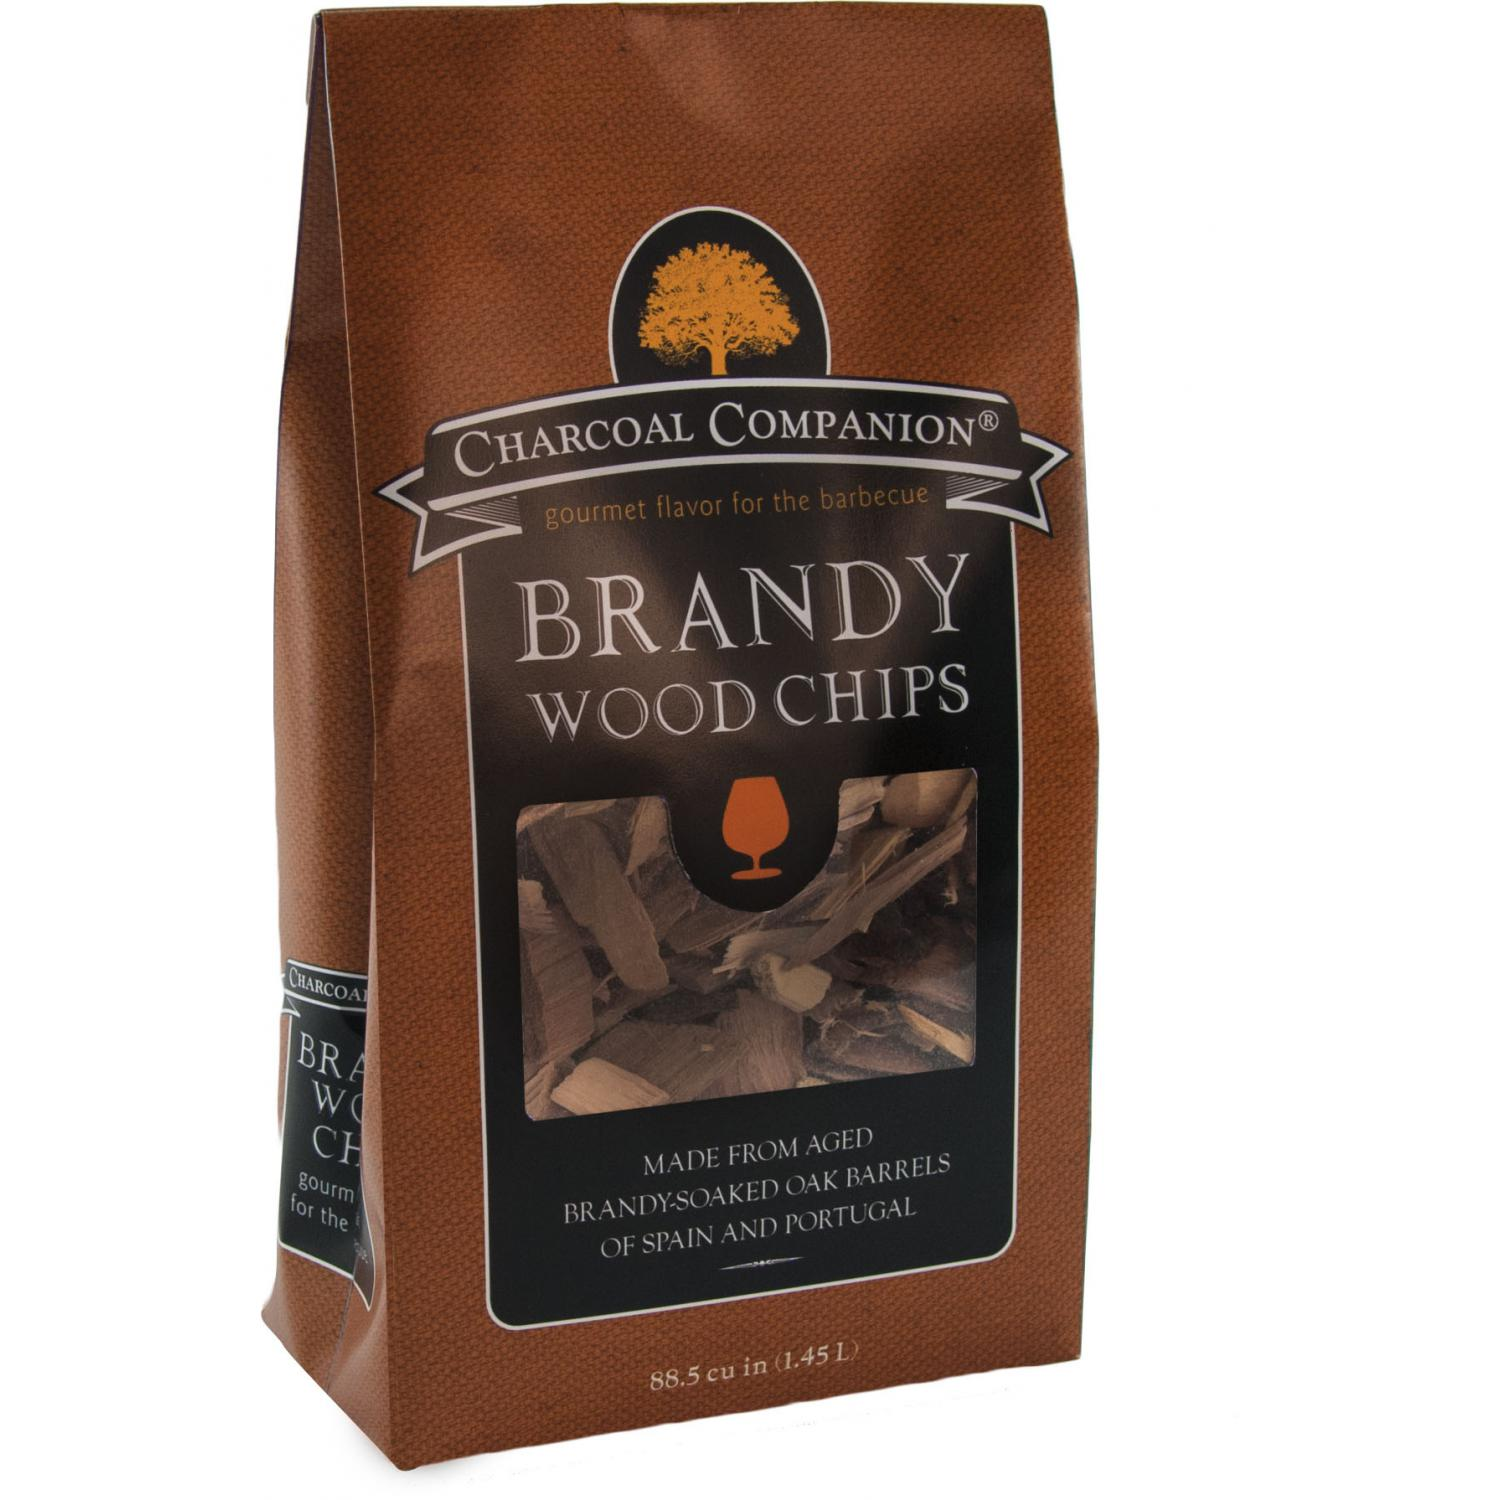 Charcoal Companion Brandy Soaked Wood Chips / 88.5 cu.in.